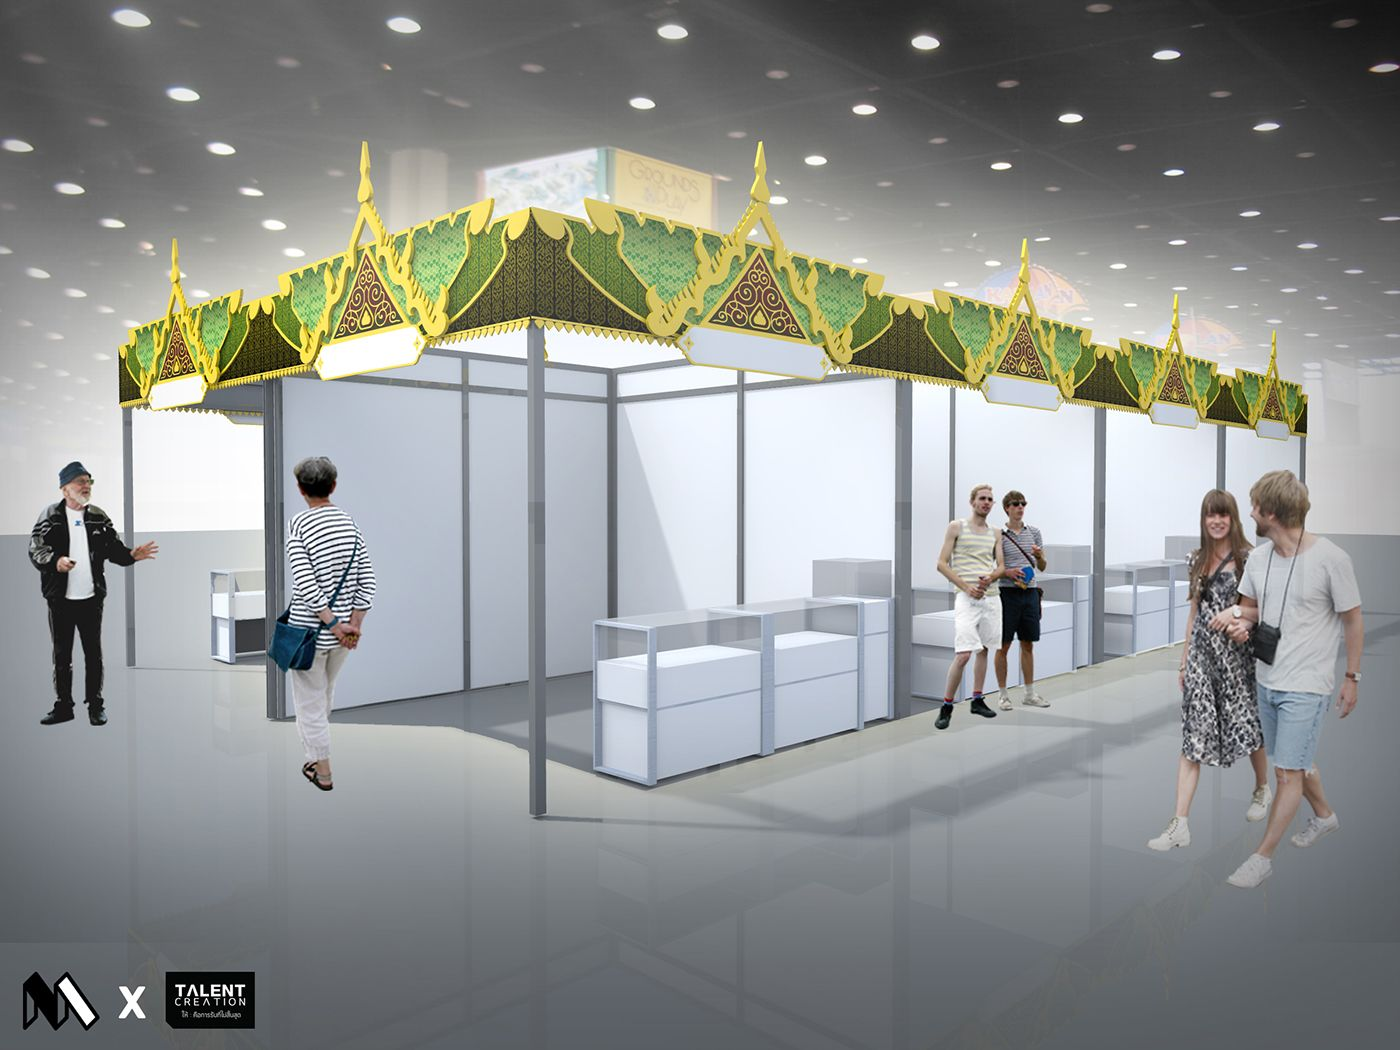 Thailand Pavilion Event Project China On Behance พาว ลเล ยน